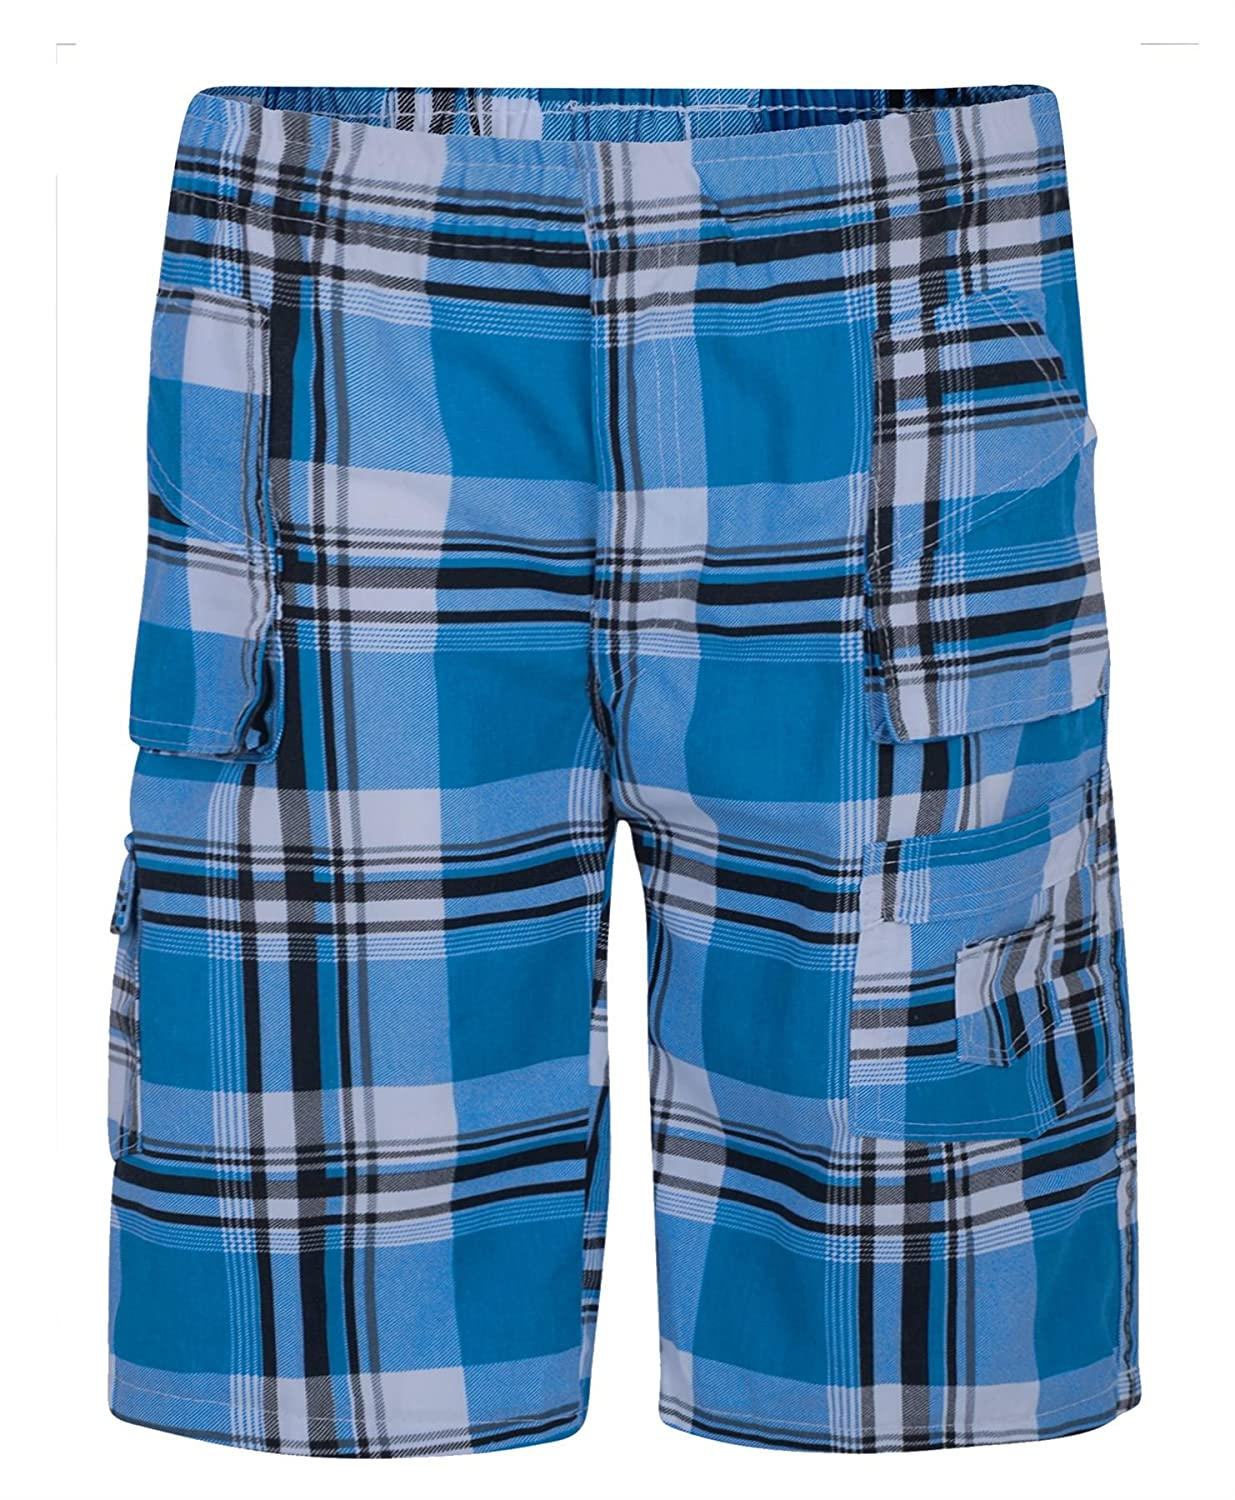 LotMart Kids Tartan Print Multipocket Shorts Check Cargo Bottoms Half Pants and Free Gift Promotional Pen With Every parcel